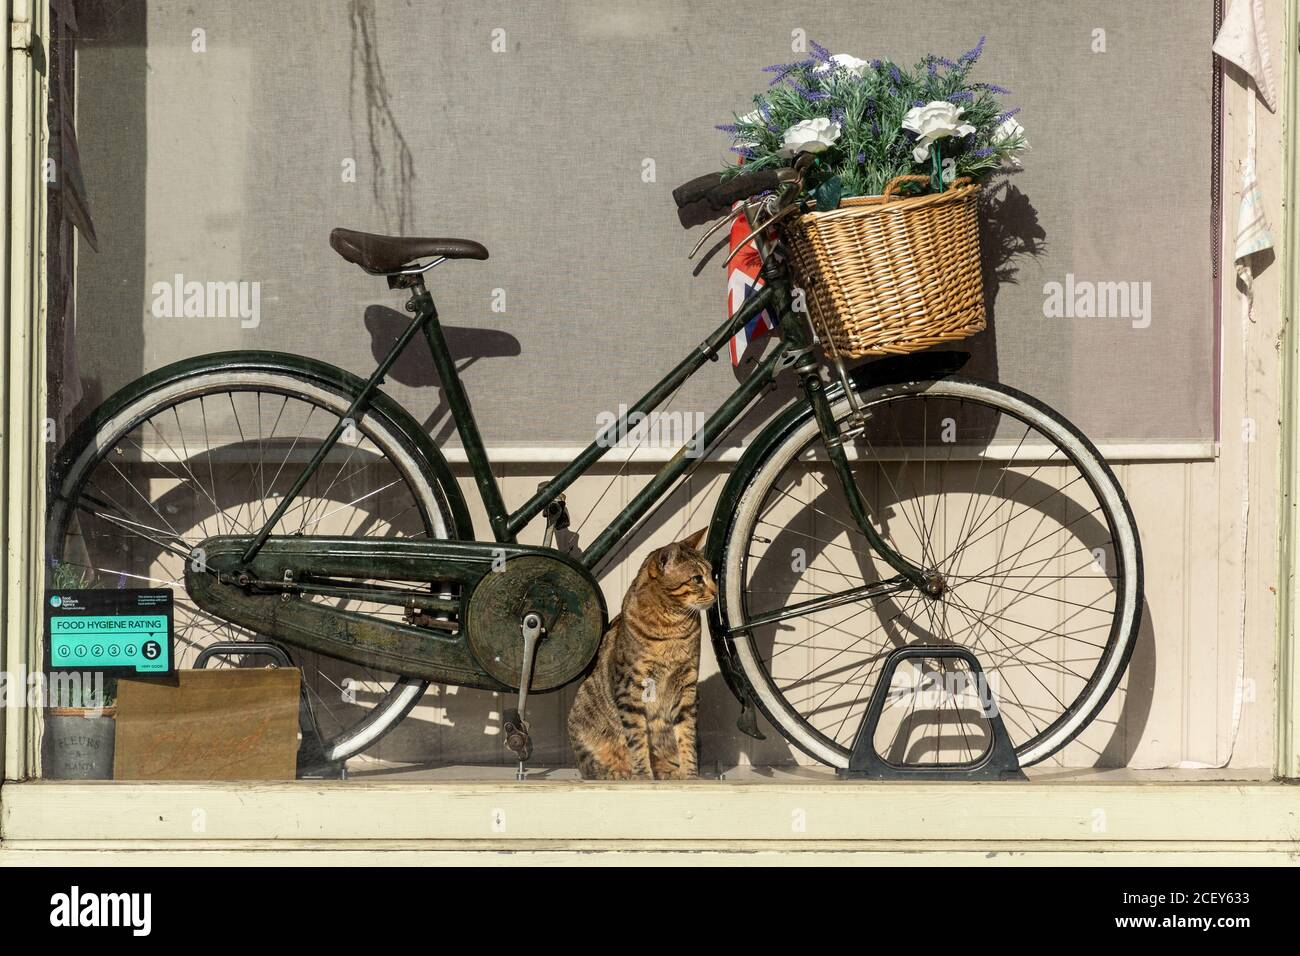 tabby-cat-sitting-in-a-shop-window-with-a-vintage-bicycle-2CEY633.jpg